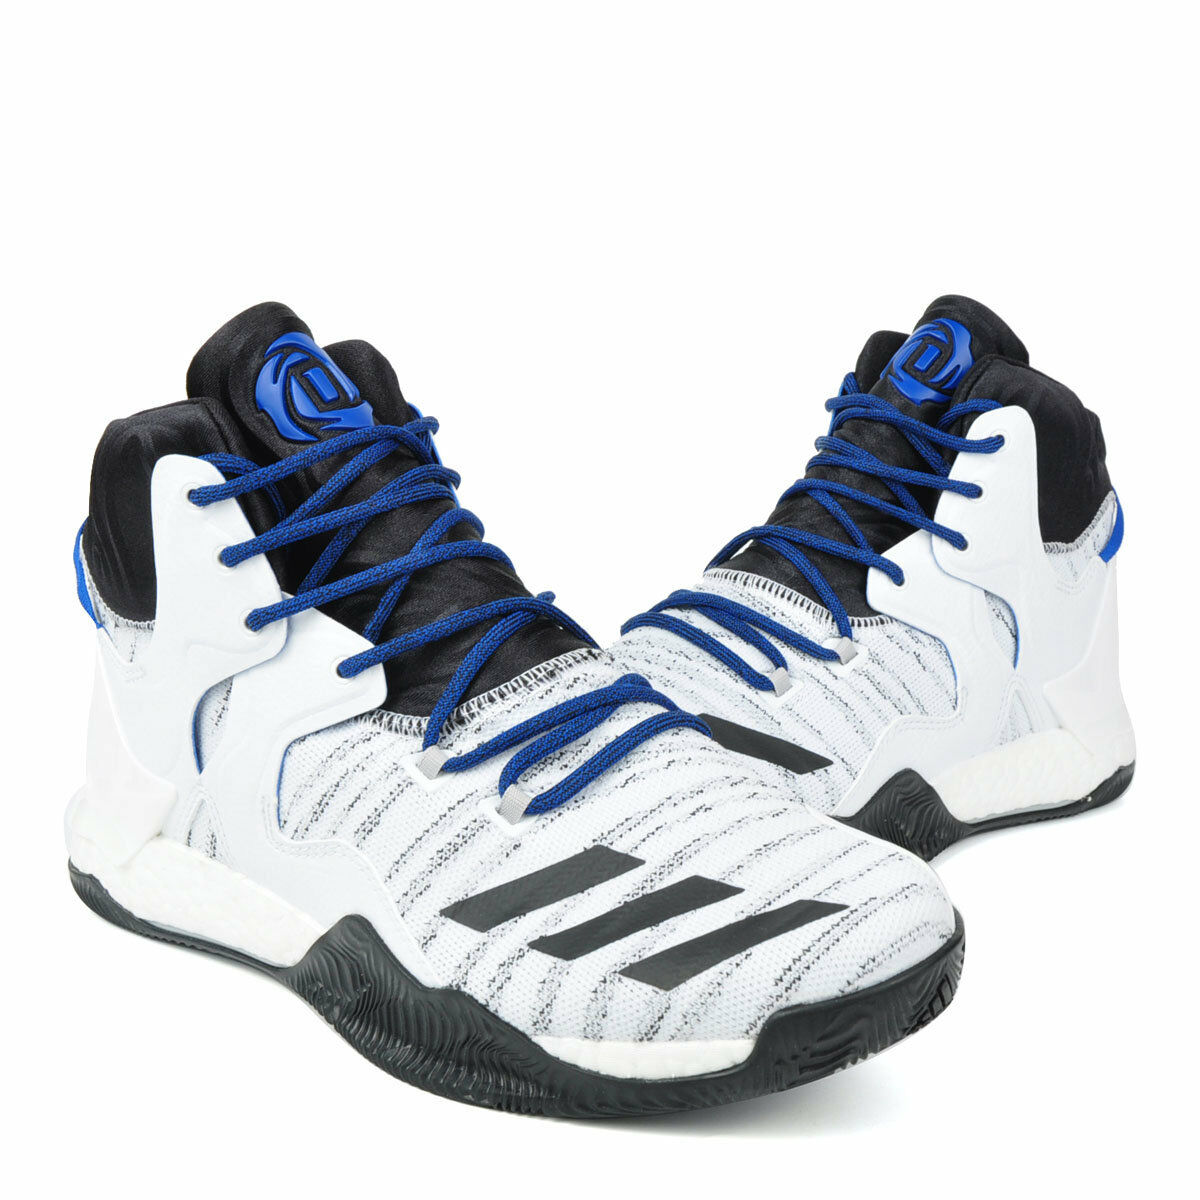 adidas adipower adipower adidas haltérophilie chaussures taille 7,5 263408